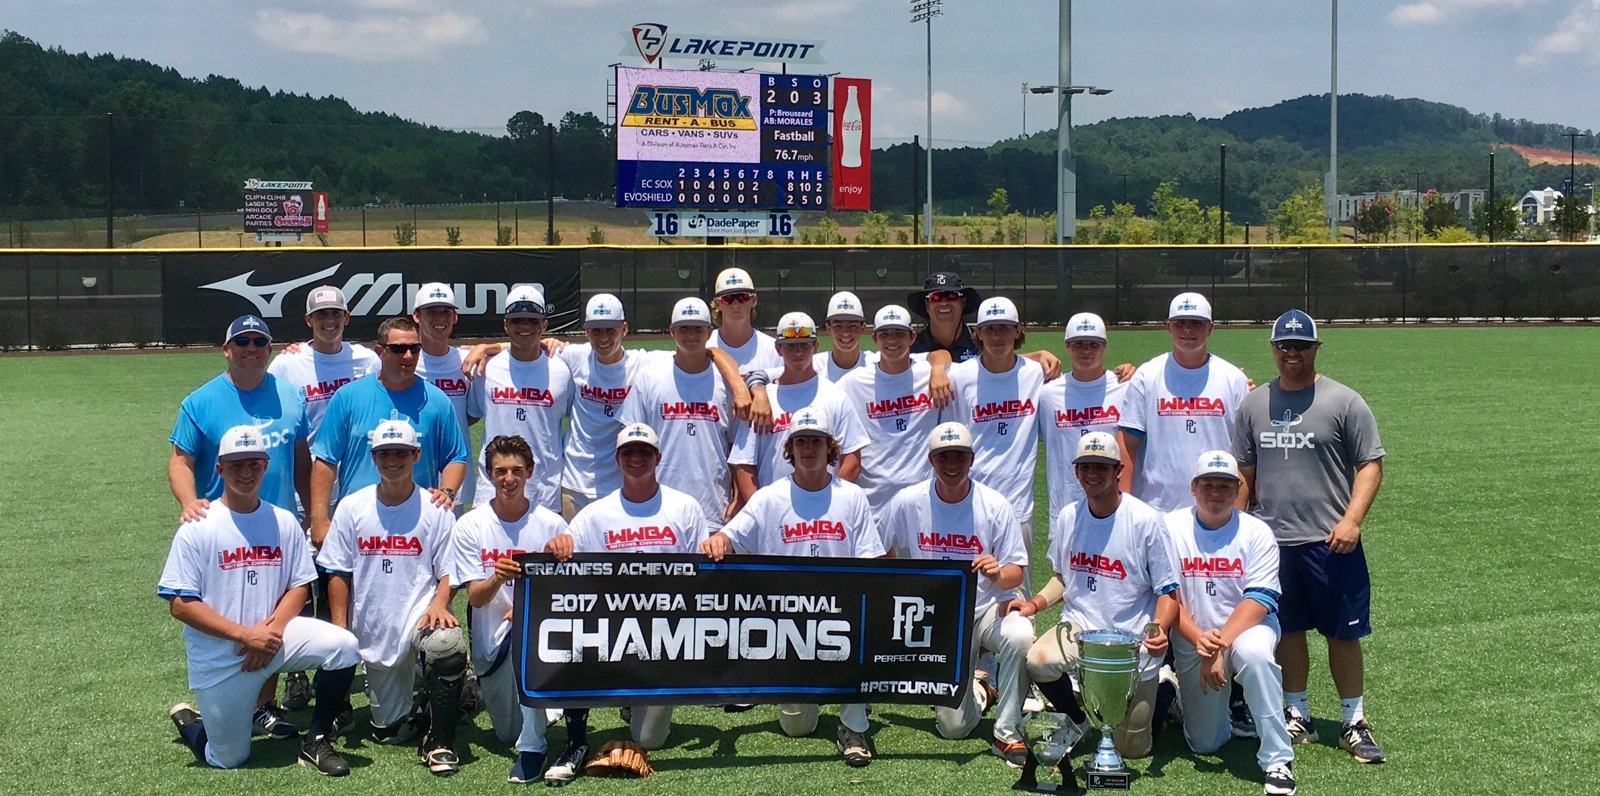 2017 World Wood Bat 15u National Champions